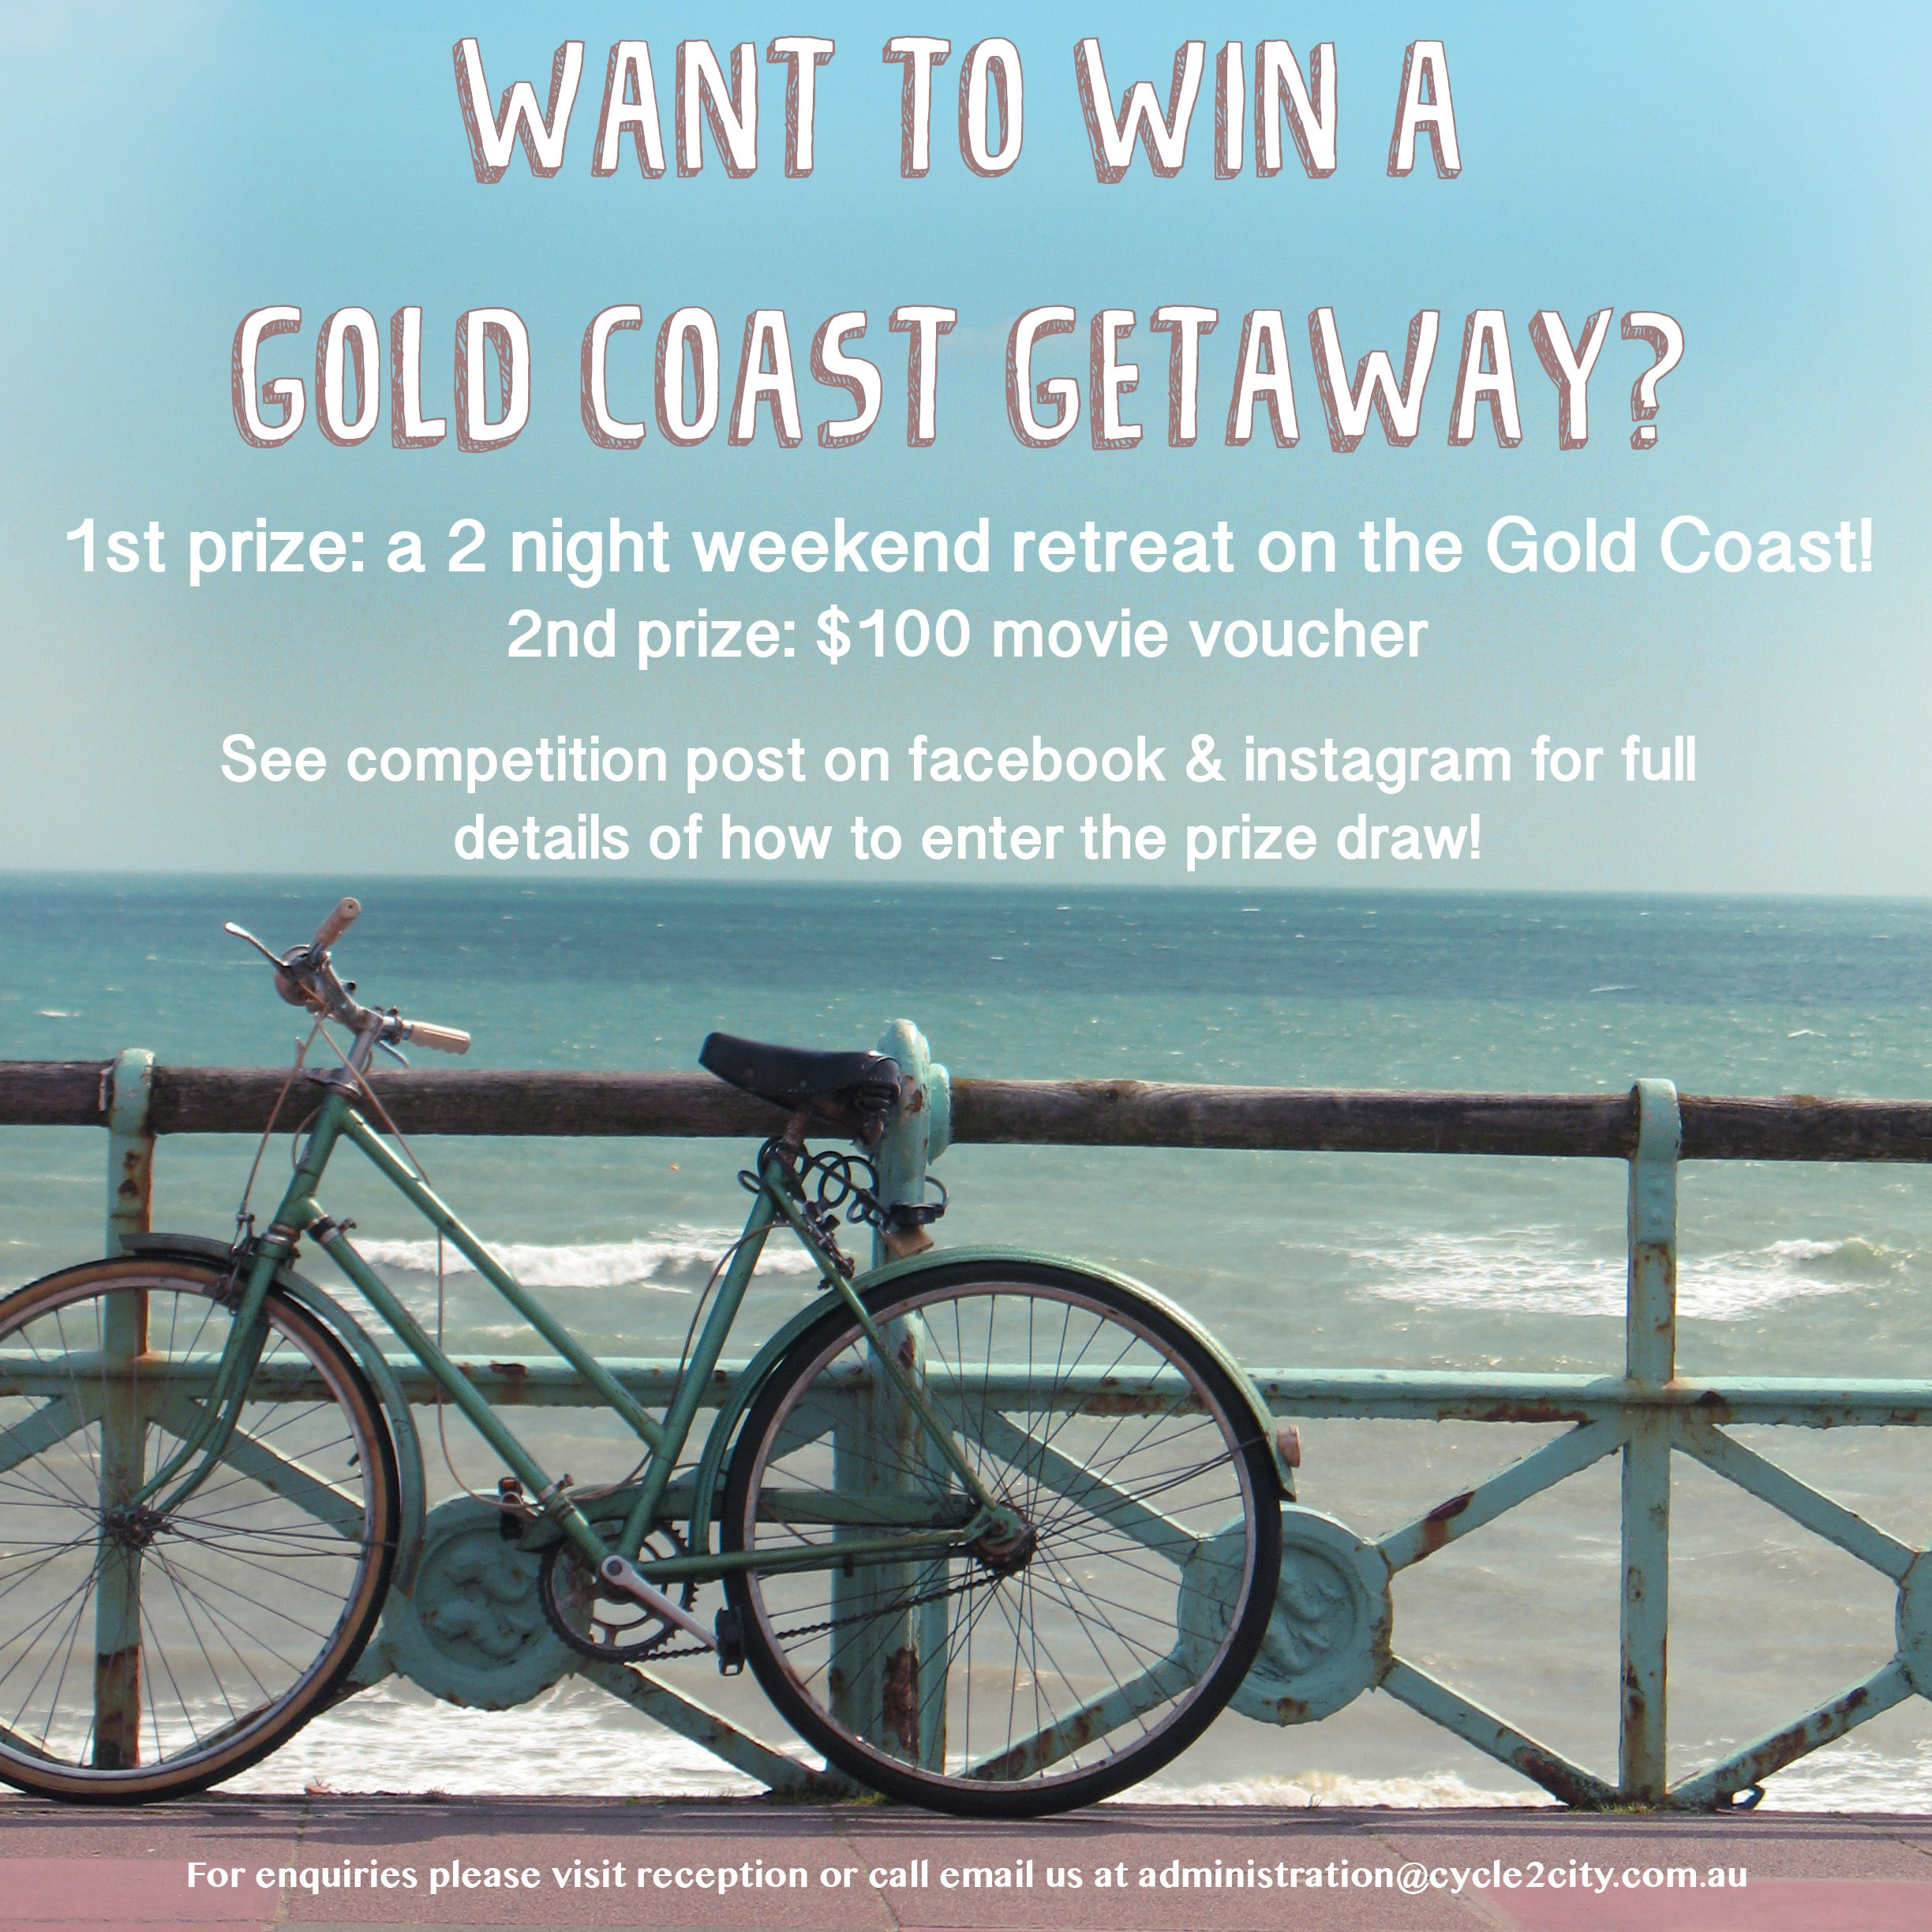 Want to win A Gold Coast Getaway?